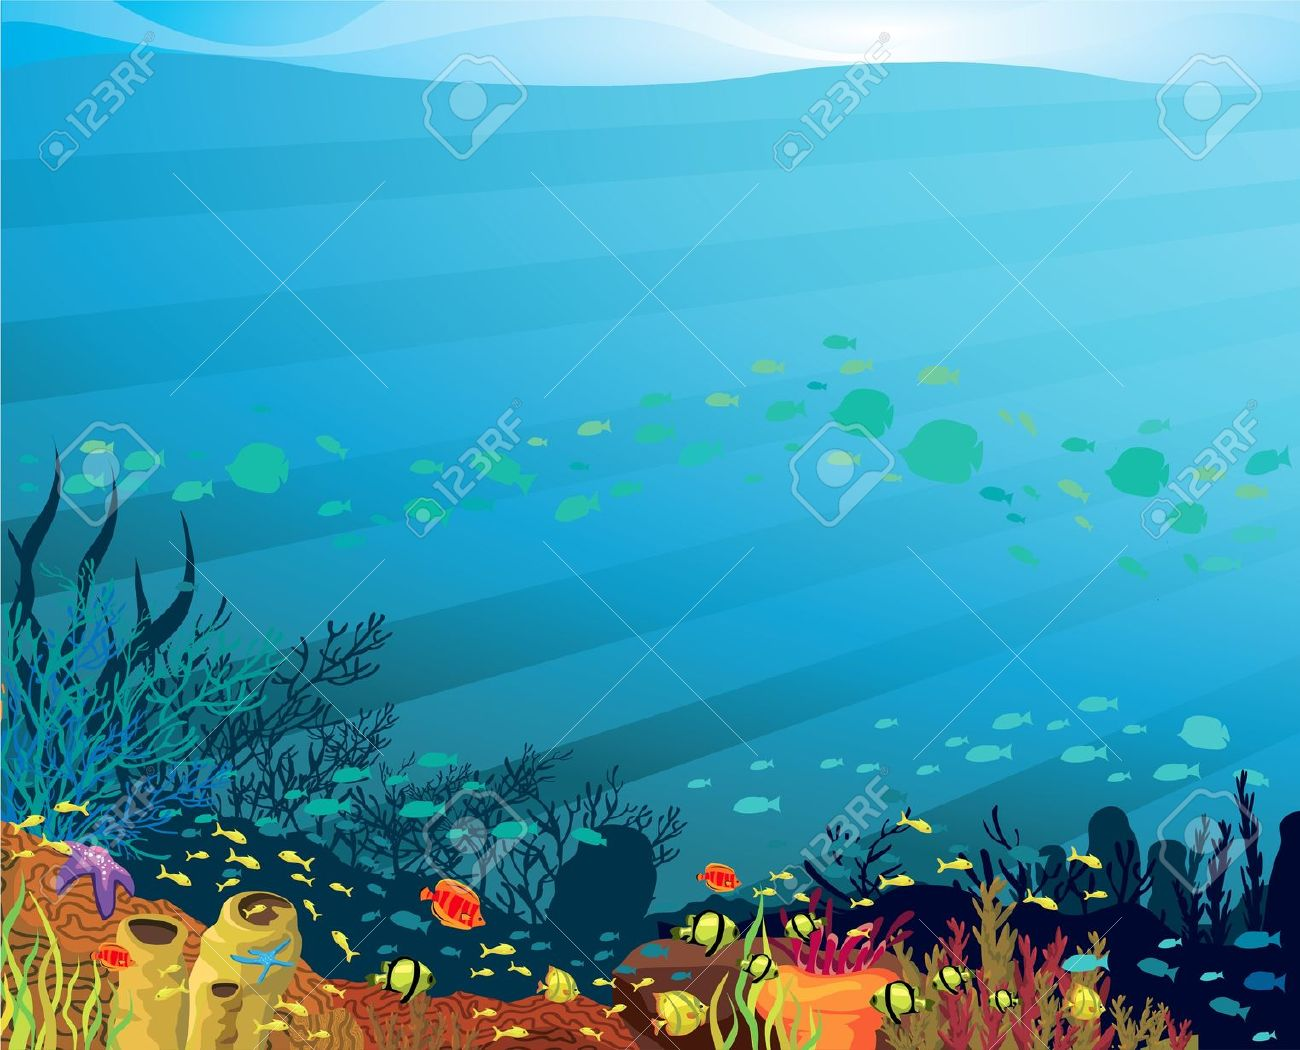 Sea background clipart free picture freeuse stock Free Sea Background Cliparts, Download Free Clip Art, Free ... picture freeuse stock